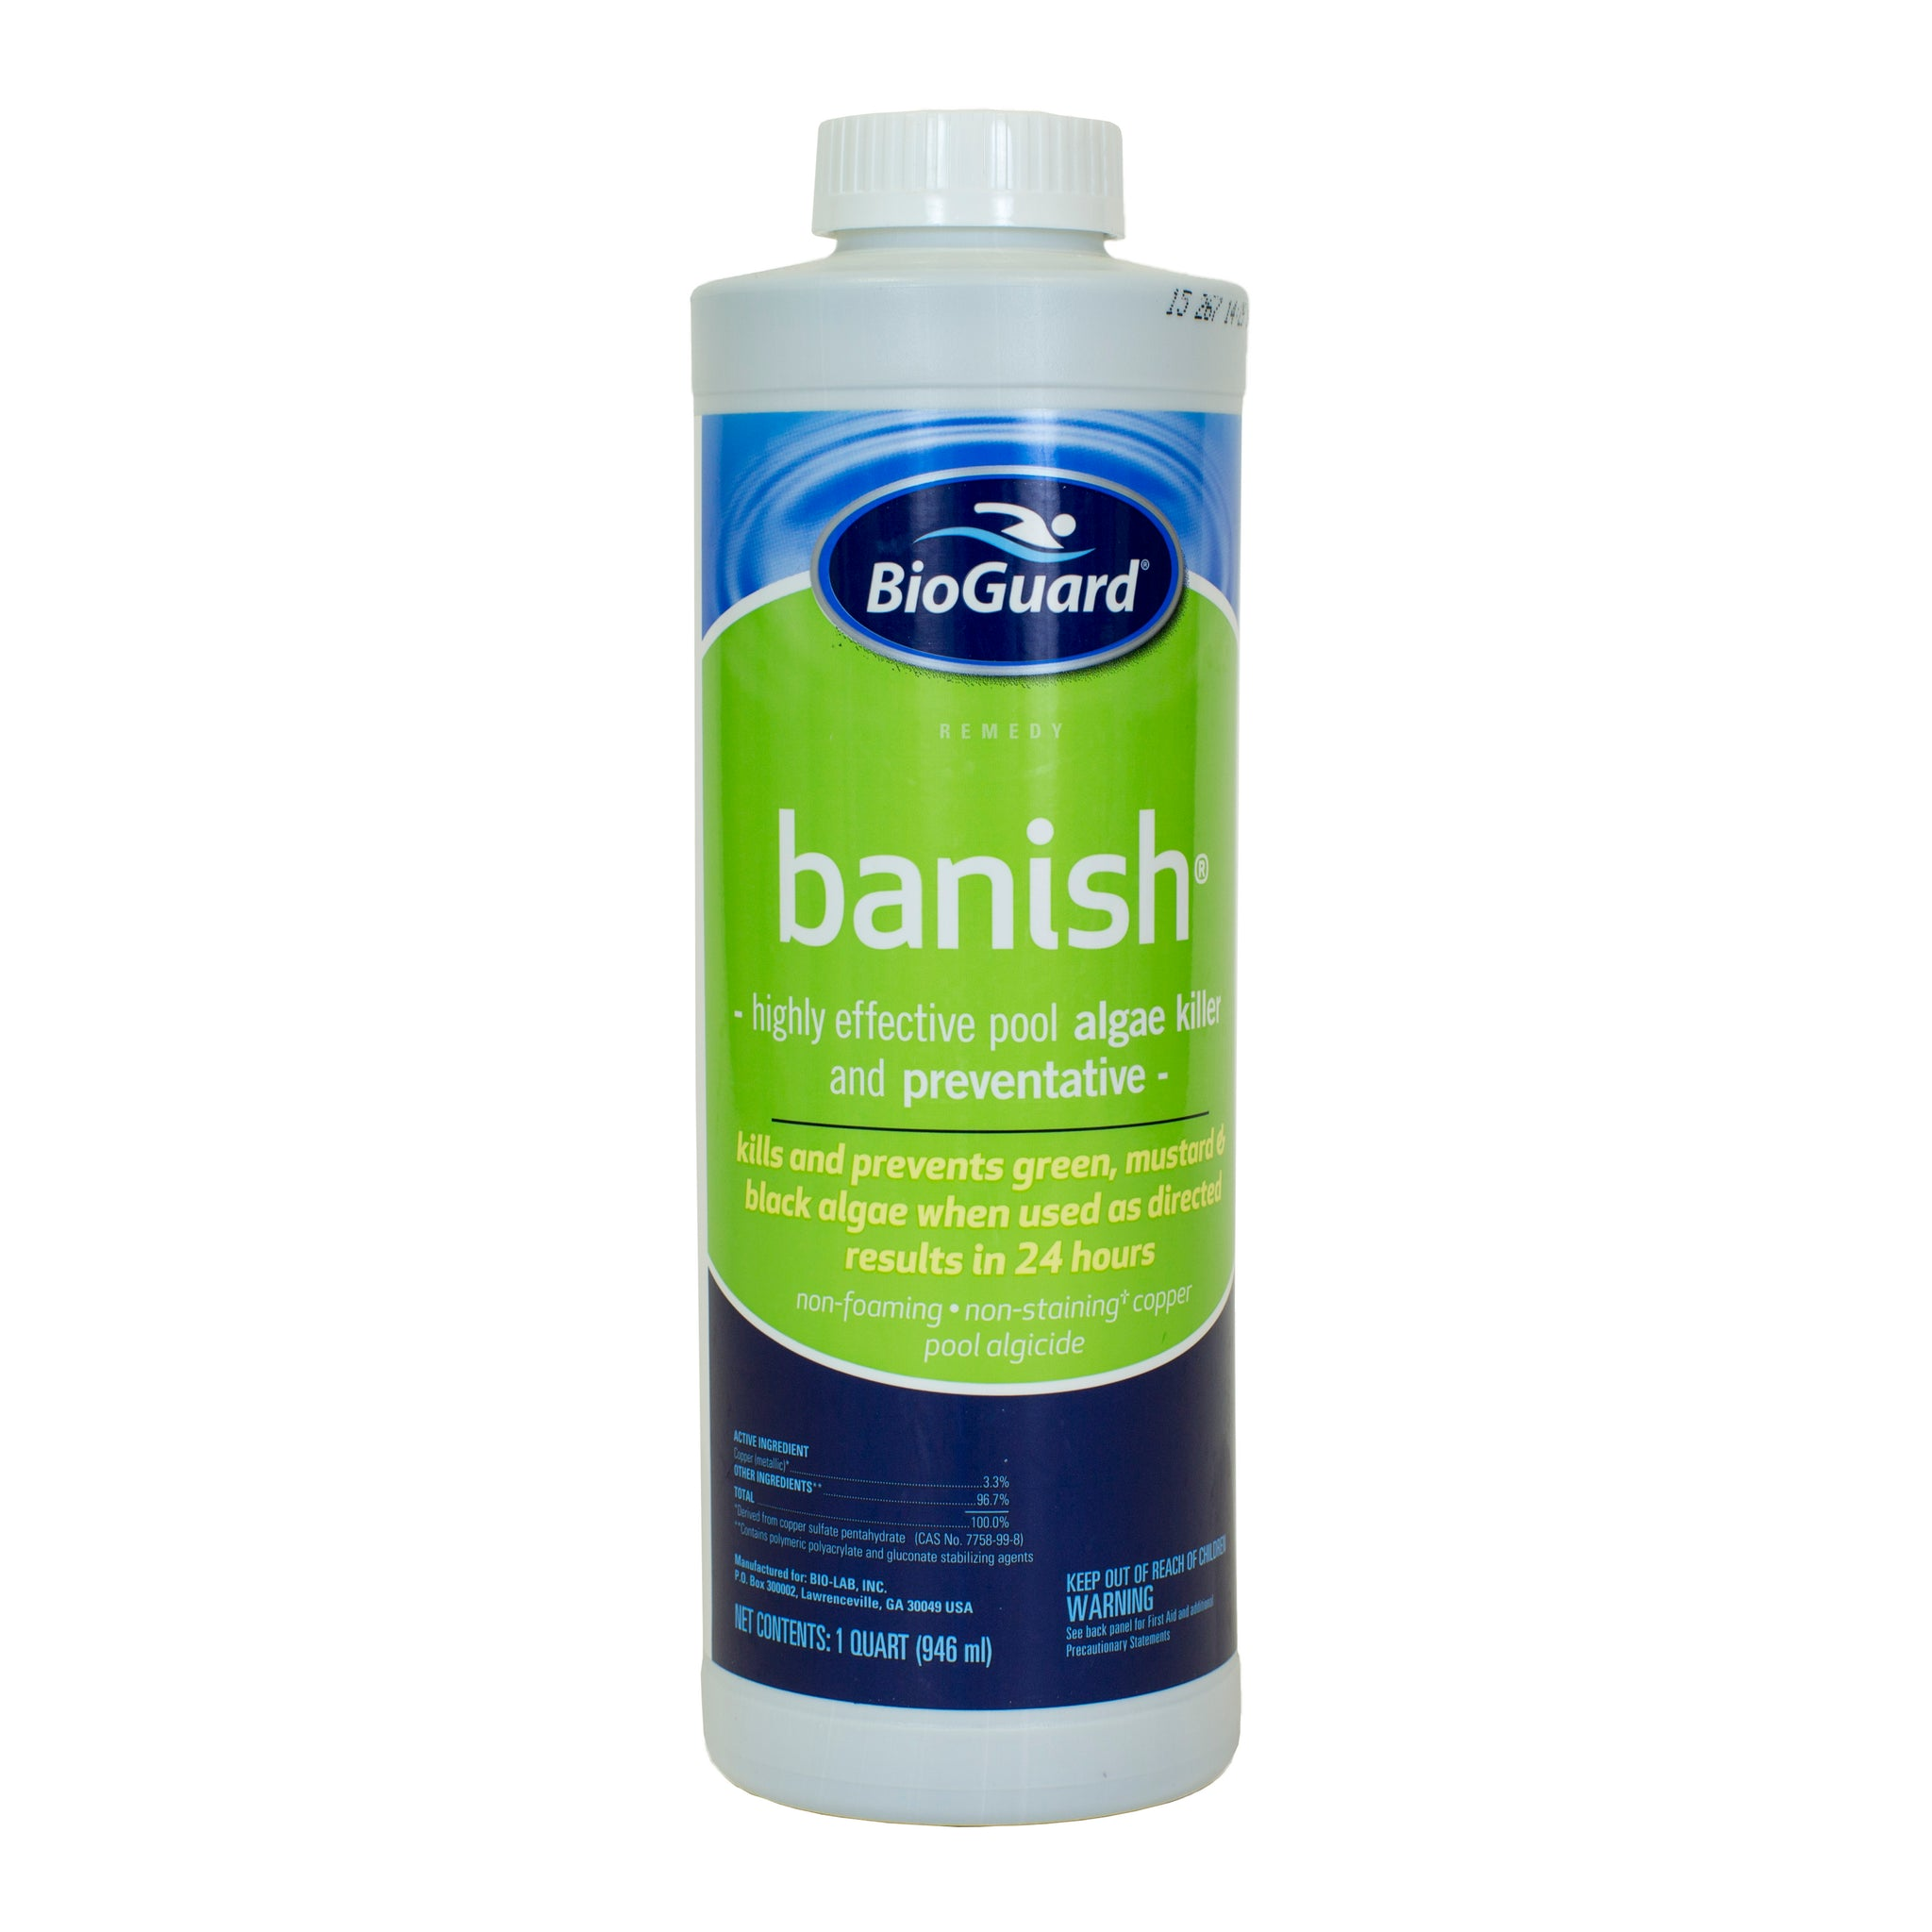 Bioguard banish pool geek Swimming pool algae treatment